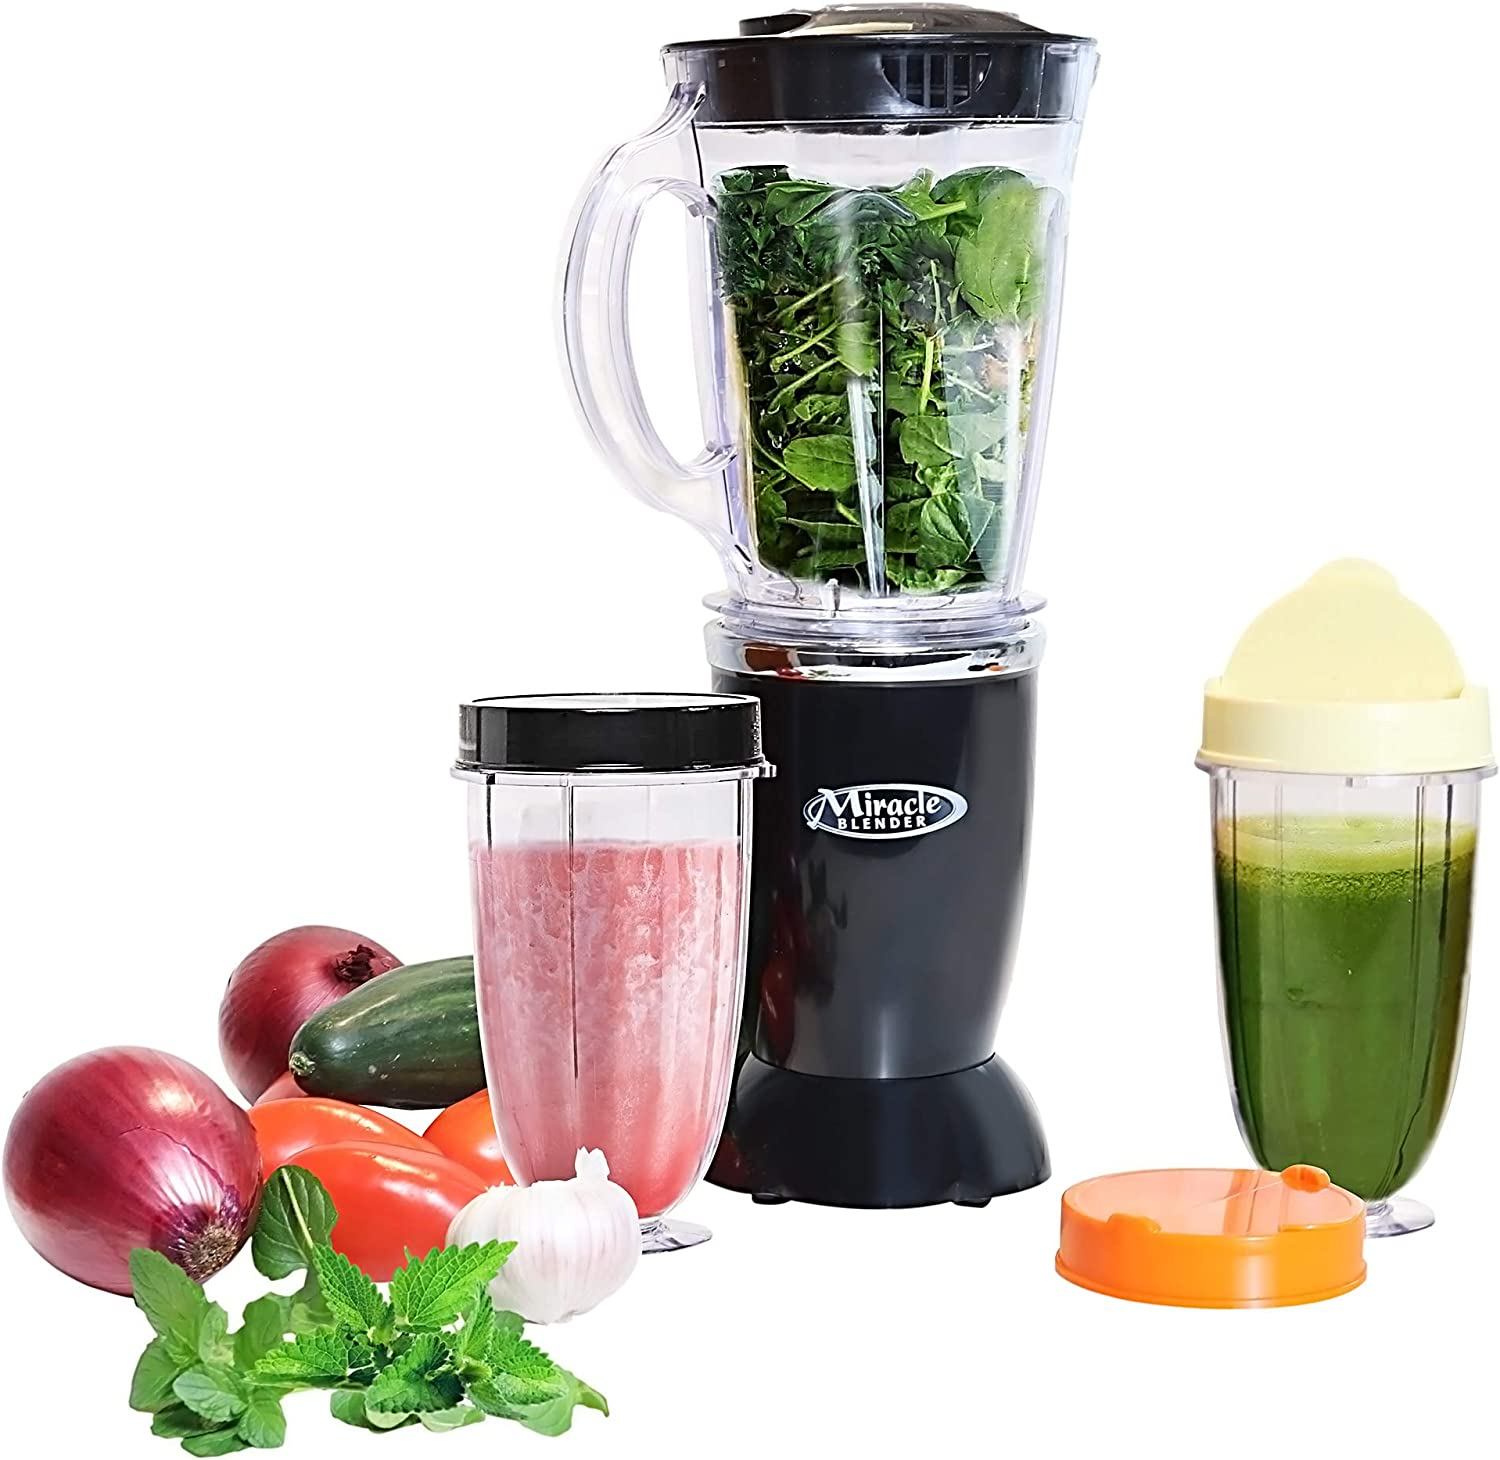 Total Chef 12-Piece Set Miracle Blender - Countertop & Portable Blender, Easy Ice Crushing for Shakes & Smoothies, Recipe Guide Included, Dishwasher Safe, 60 Watts.